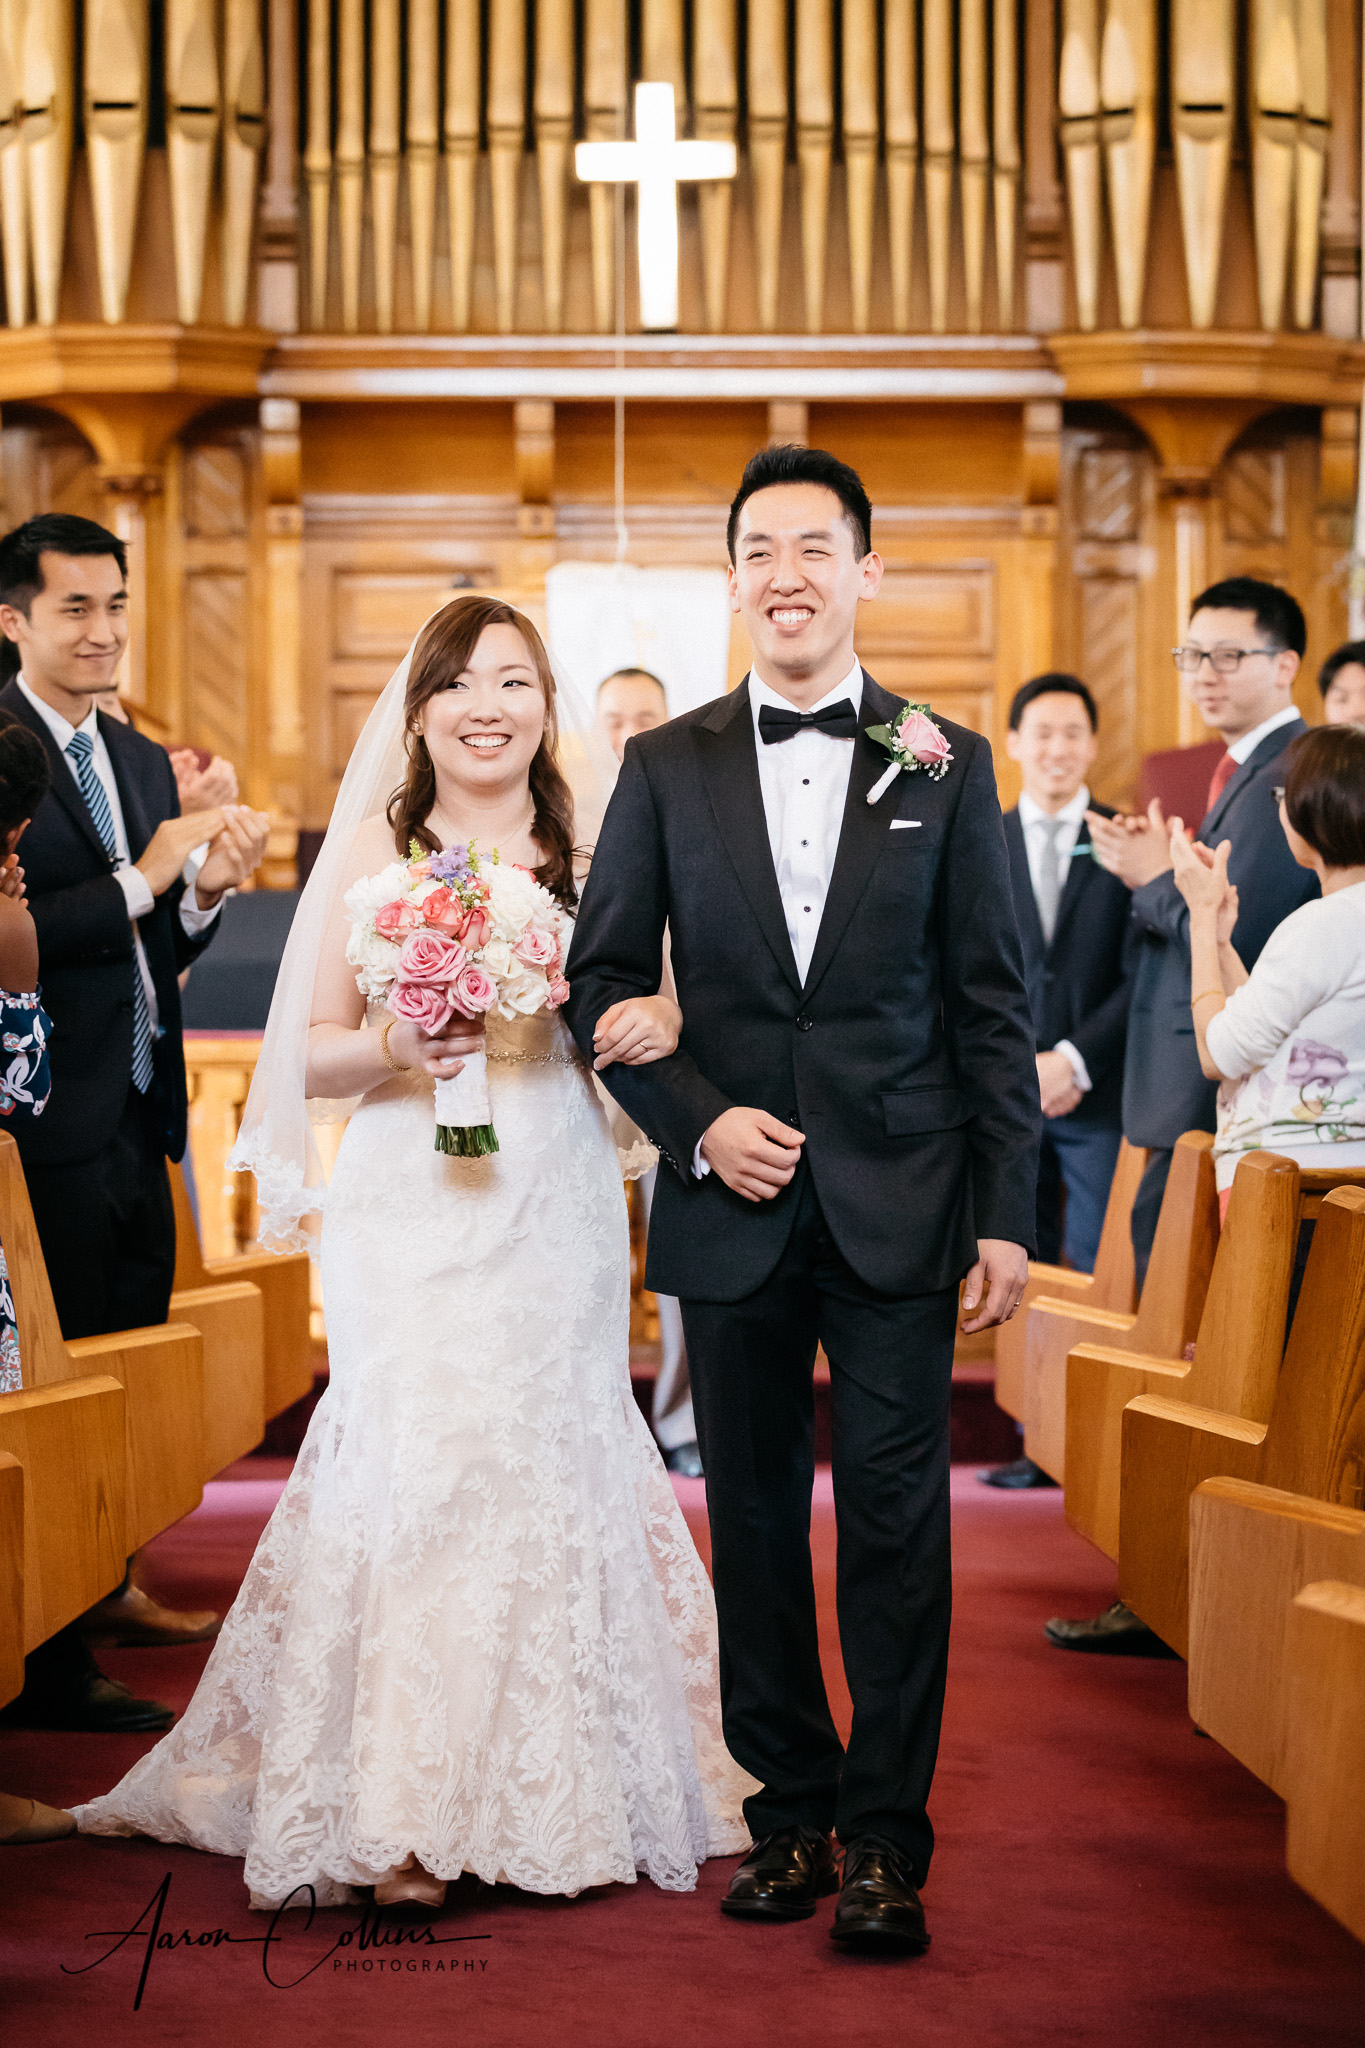 Bride and groom  recessional, just married!